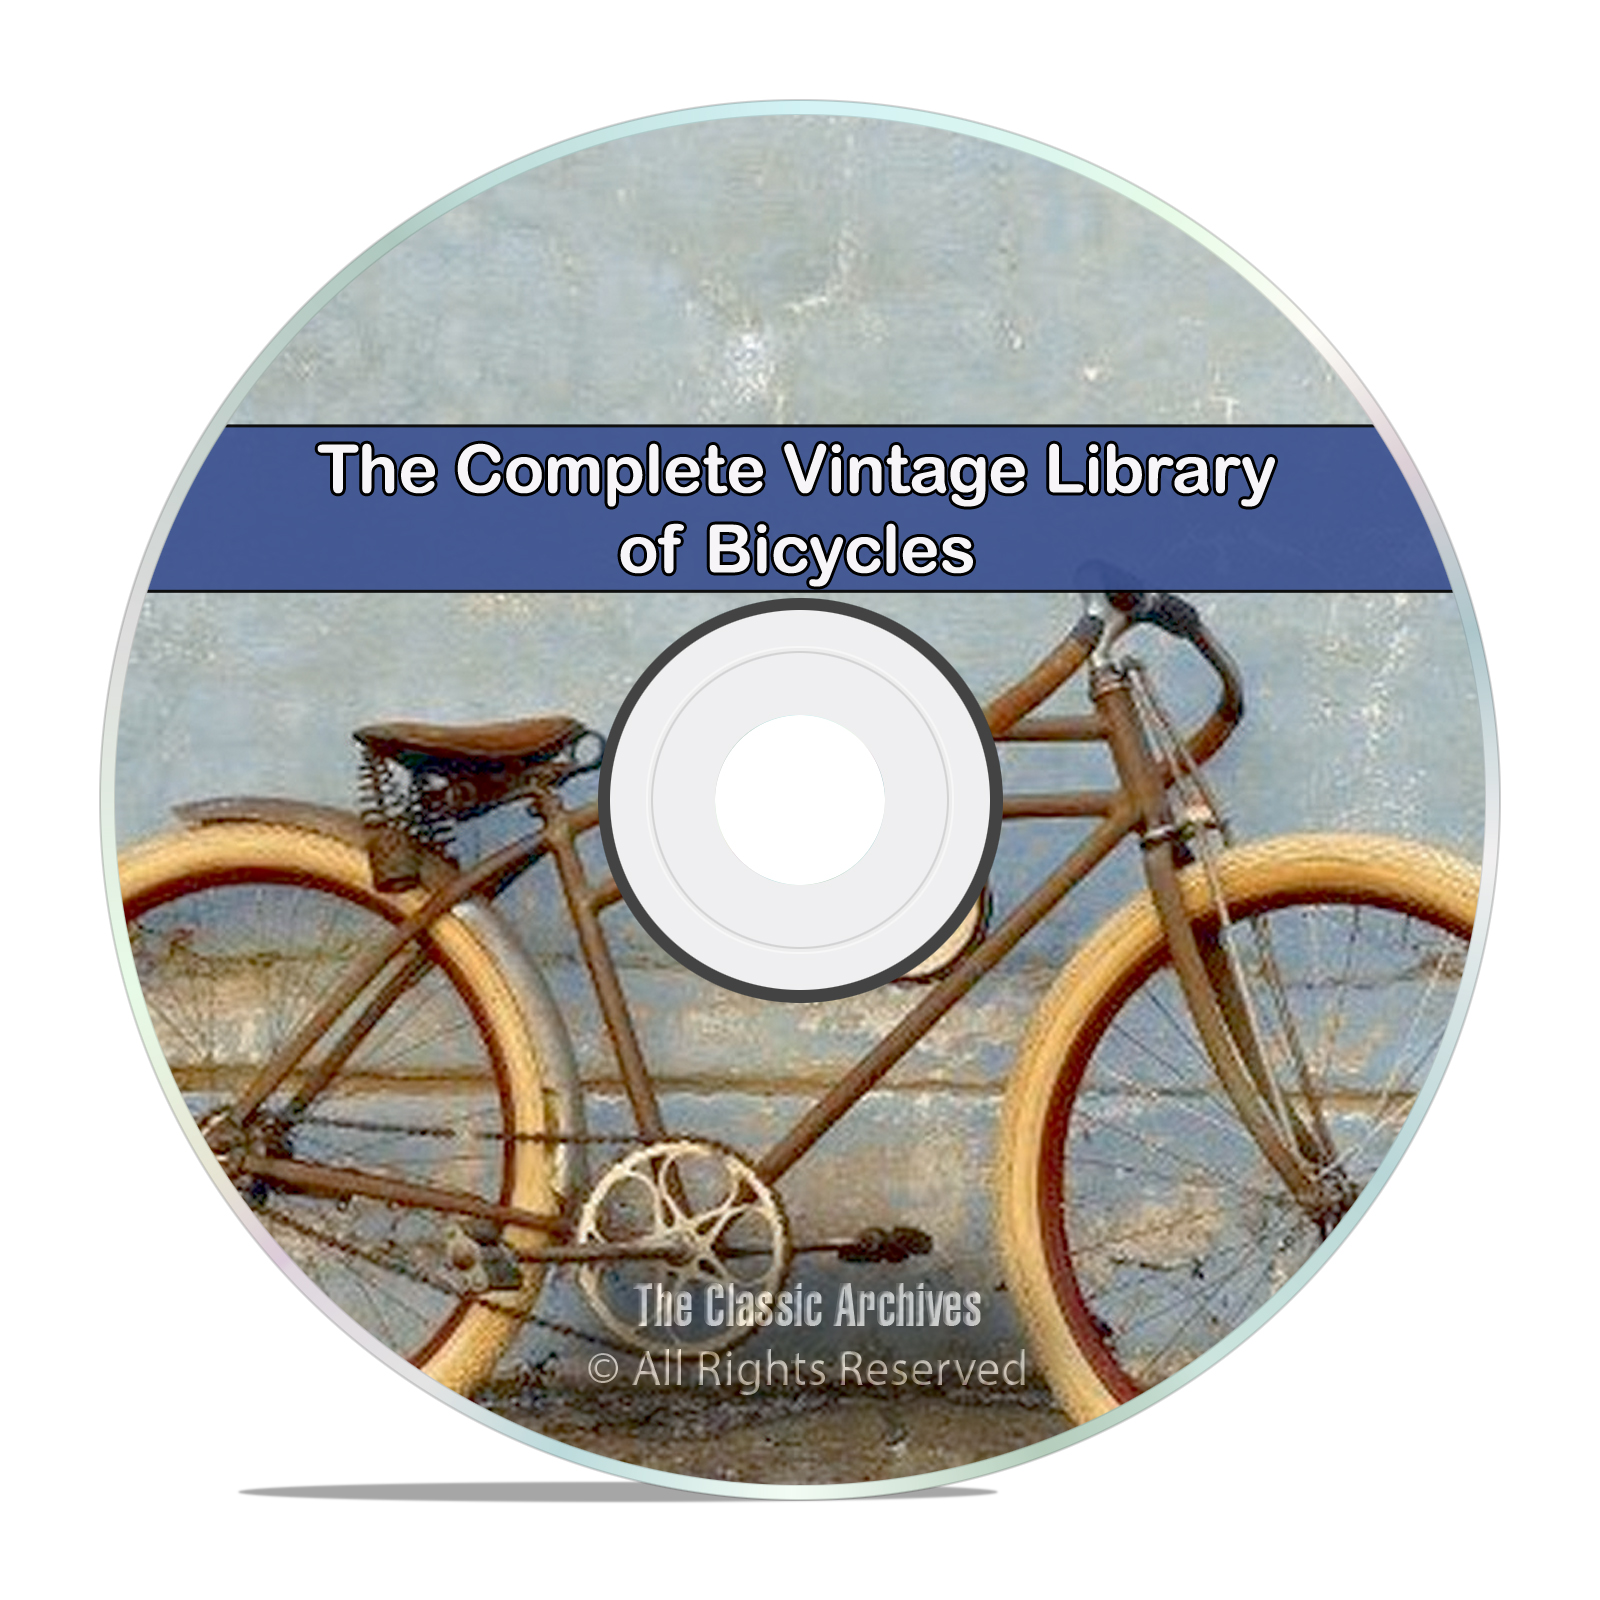 Library of Vintage Bicycles, 53 Books, Tricycle, How to Build, Repair CD